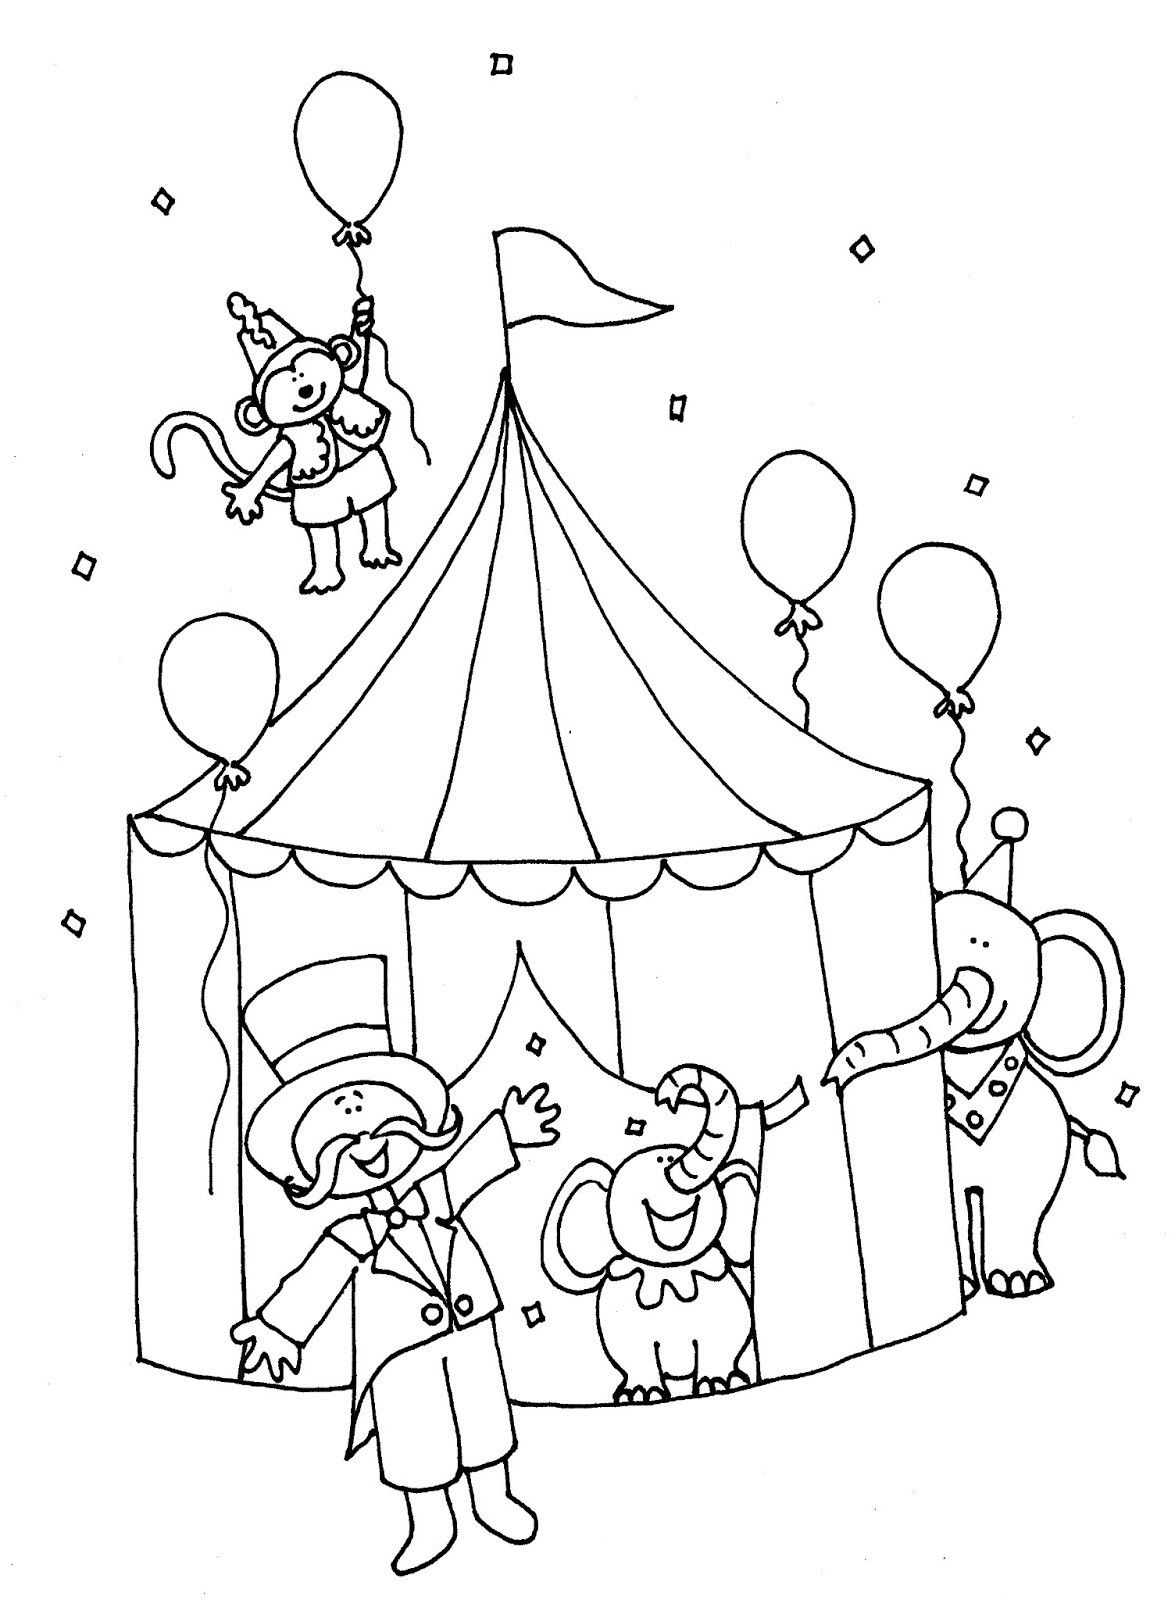 Carnival Coloring Pages Best Of Printable Circus Extraordinary